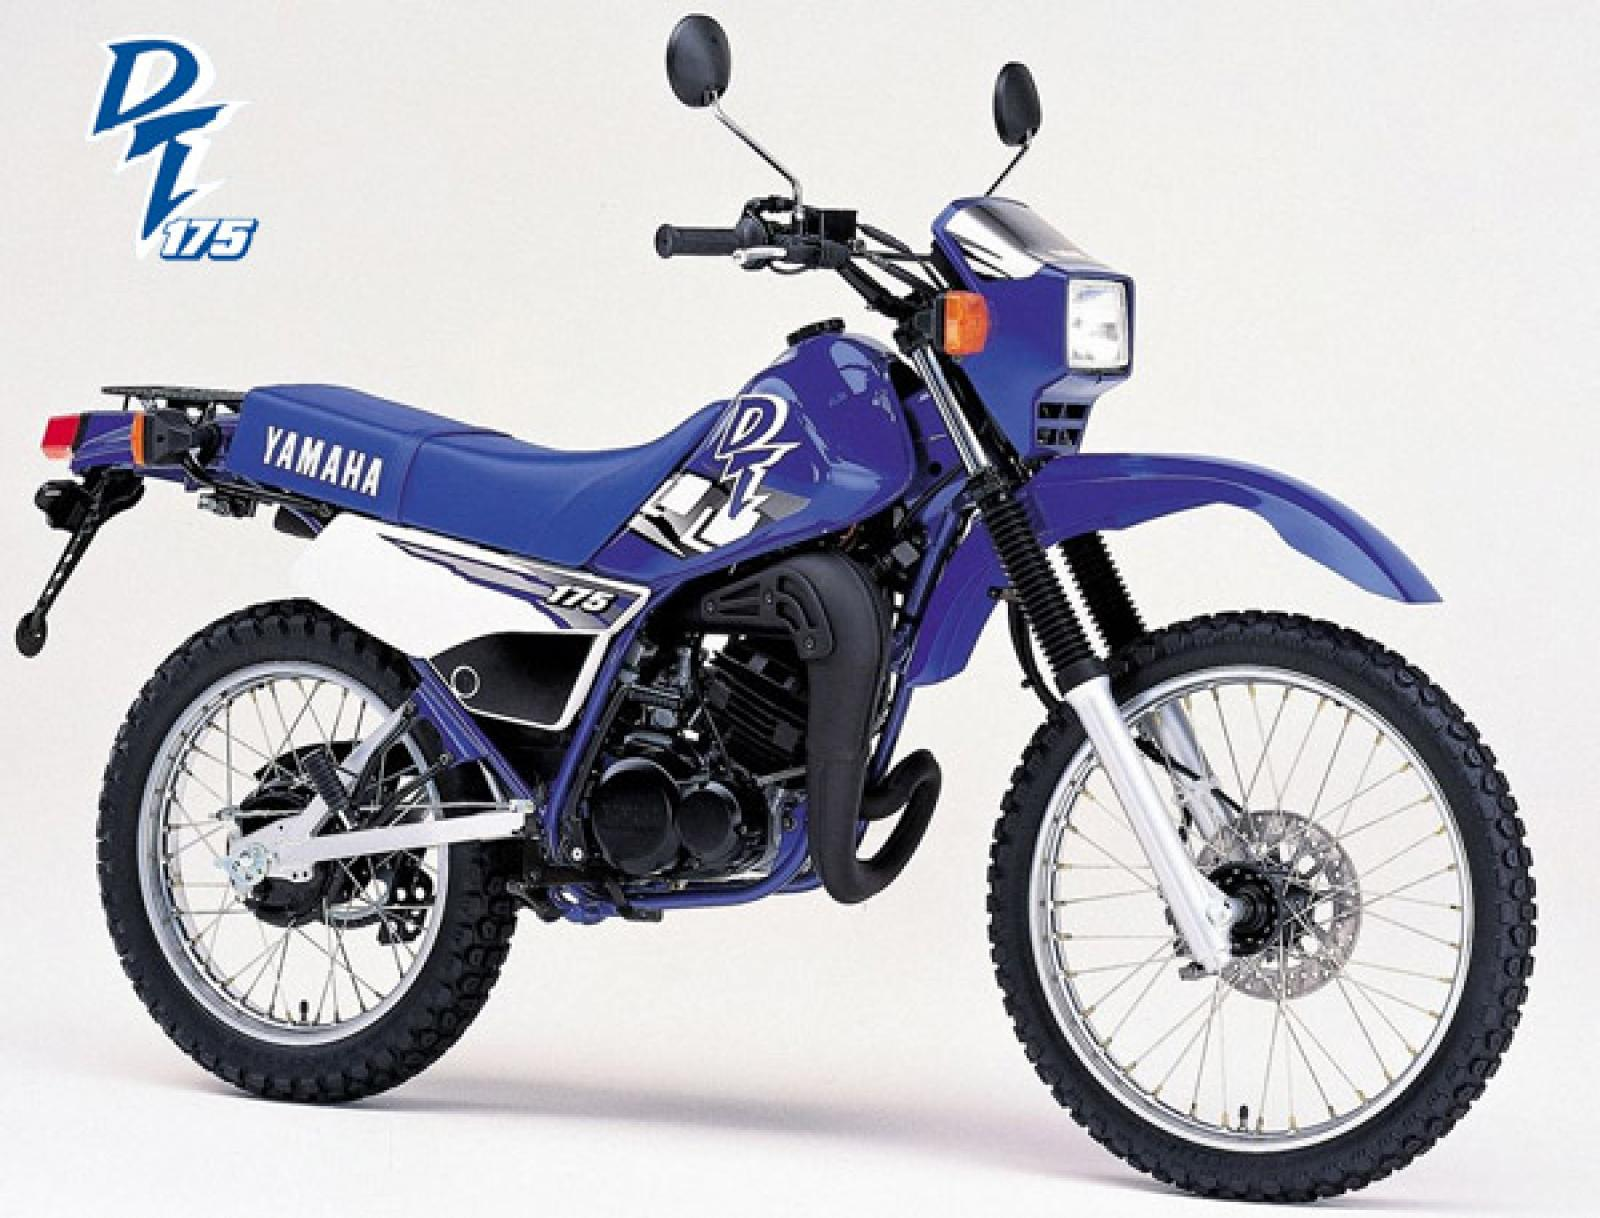 Yamaha dt 175 top speed bing images for Yamaha clp 120 specification